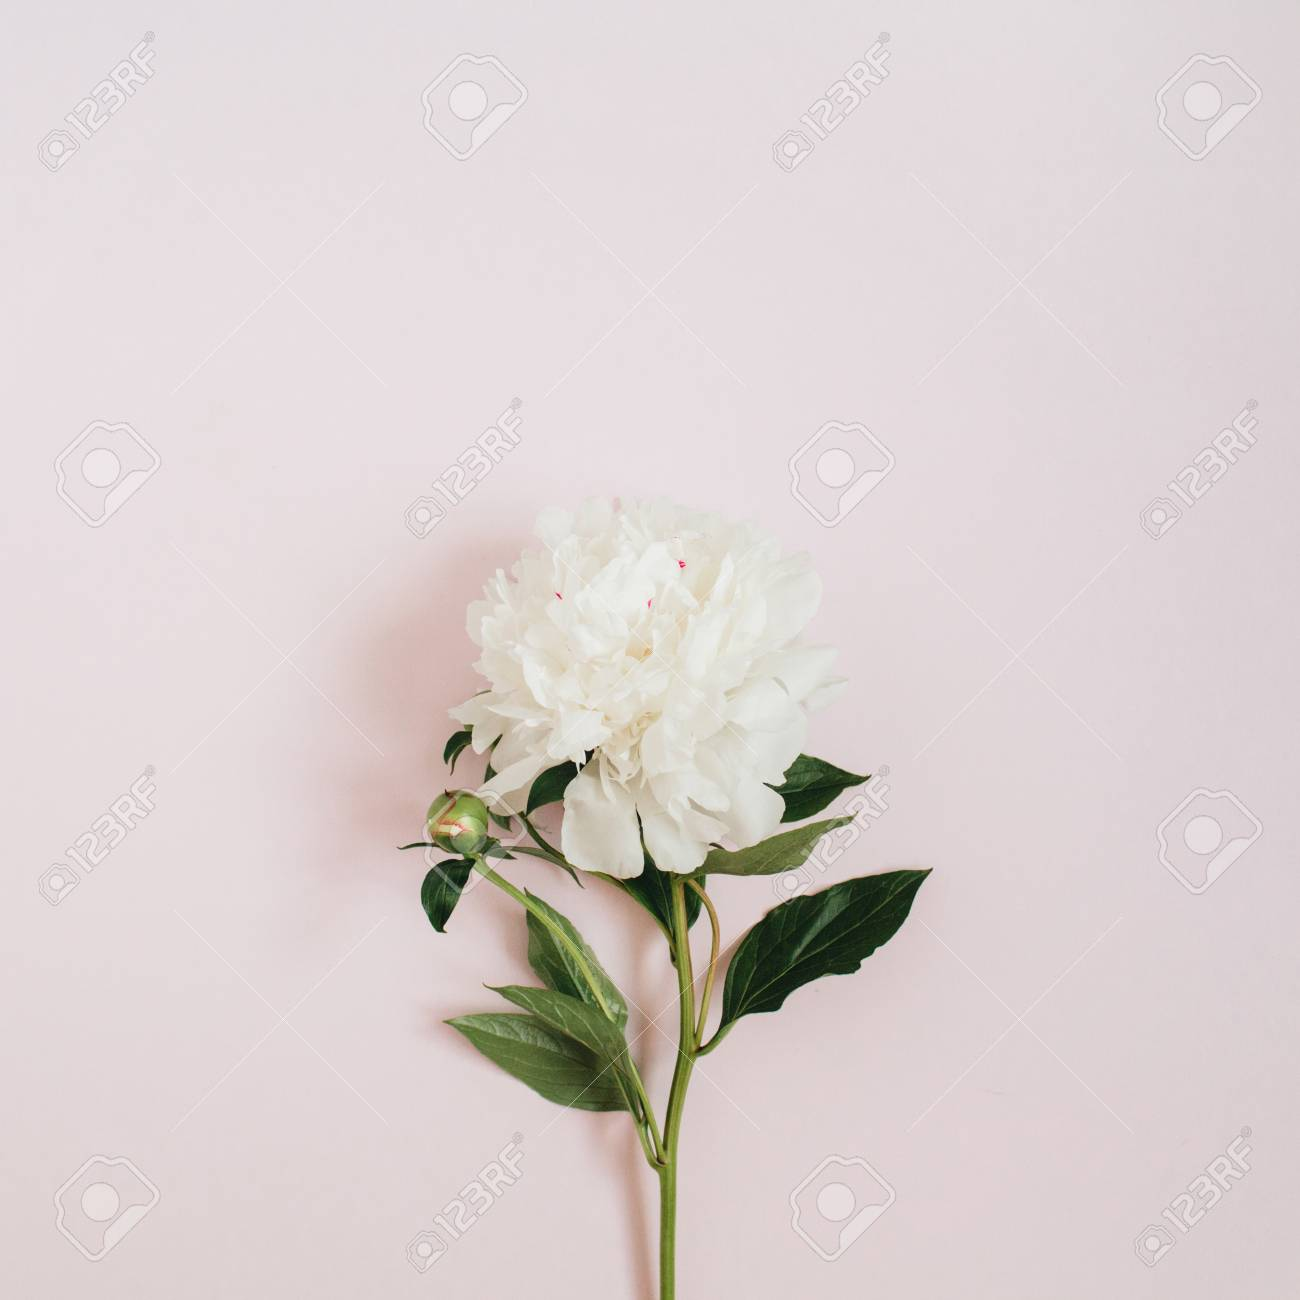 Beautiful white peony flower on pink background flat lay top beautiful white peony flower on pink background flat lay top view stock photo mightylinksfo